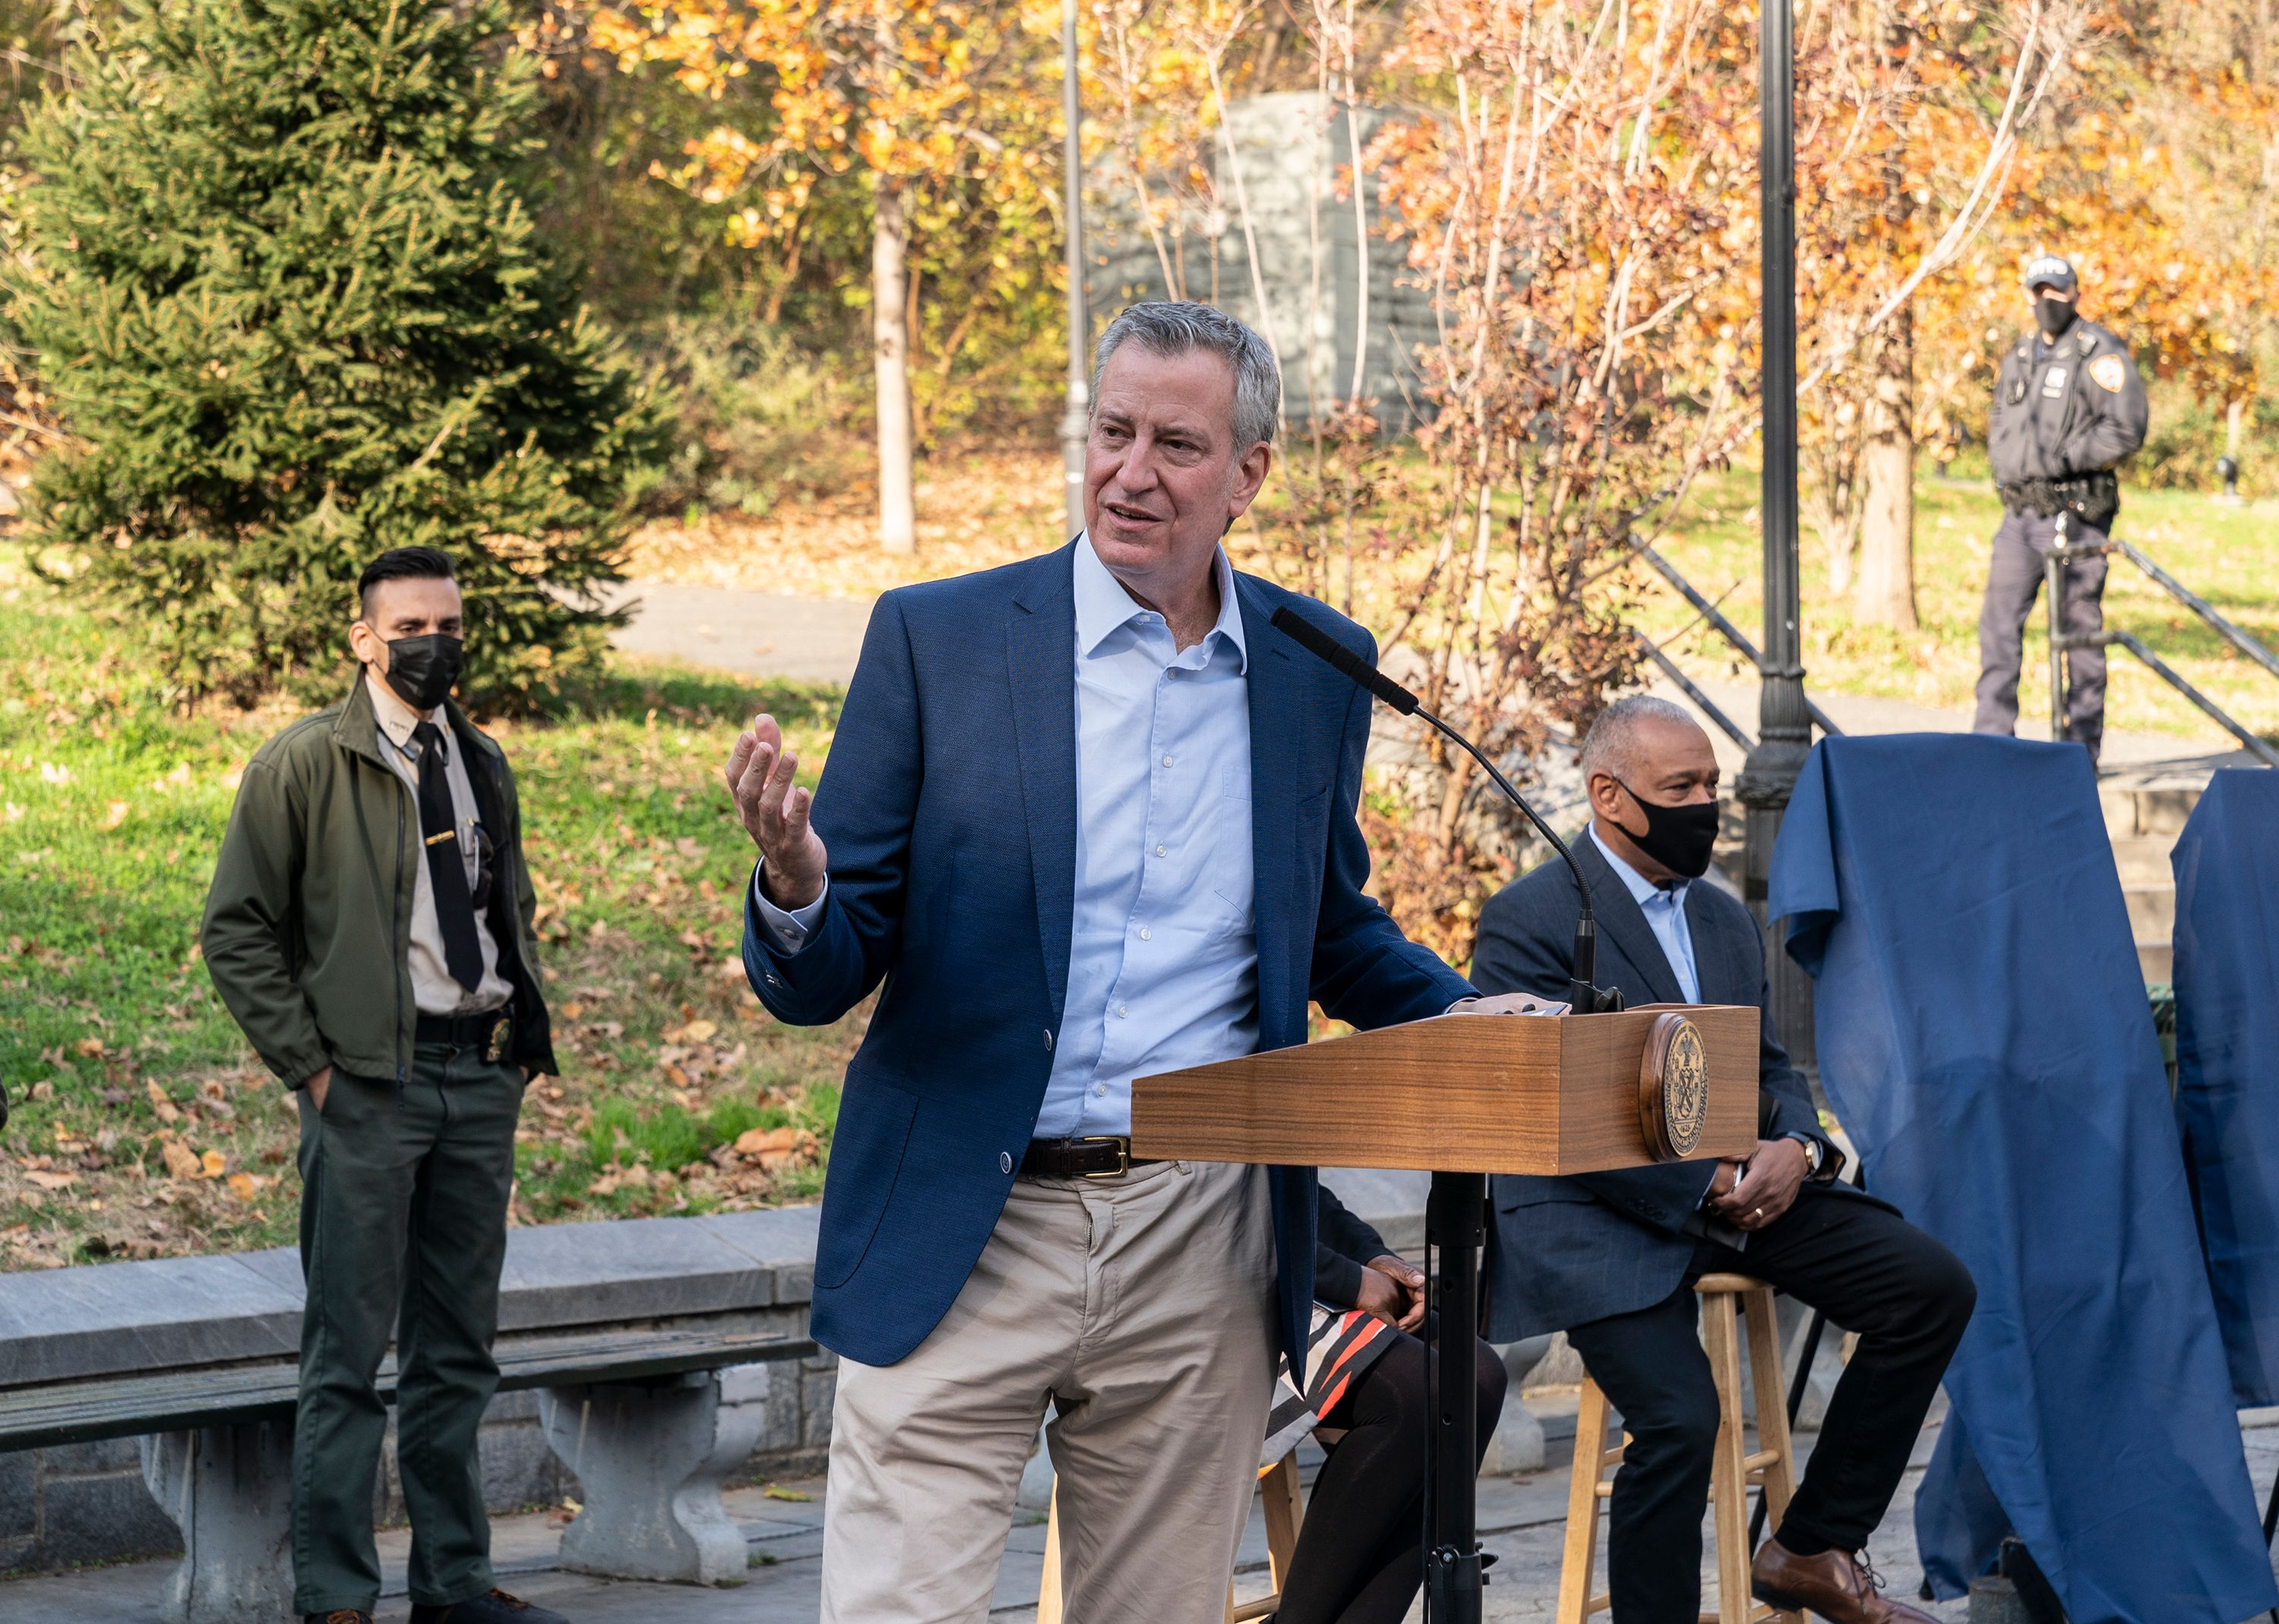 NYC Faces Ongoing Budget Crisis As De Blasio Pleads For Second Federal Stimulus